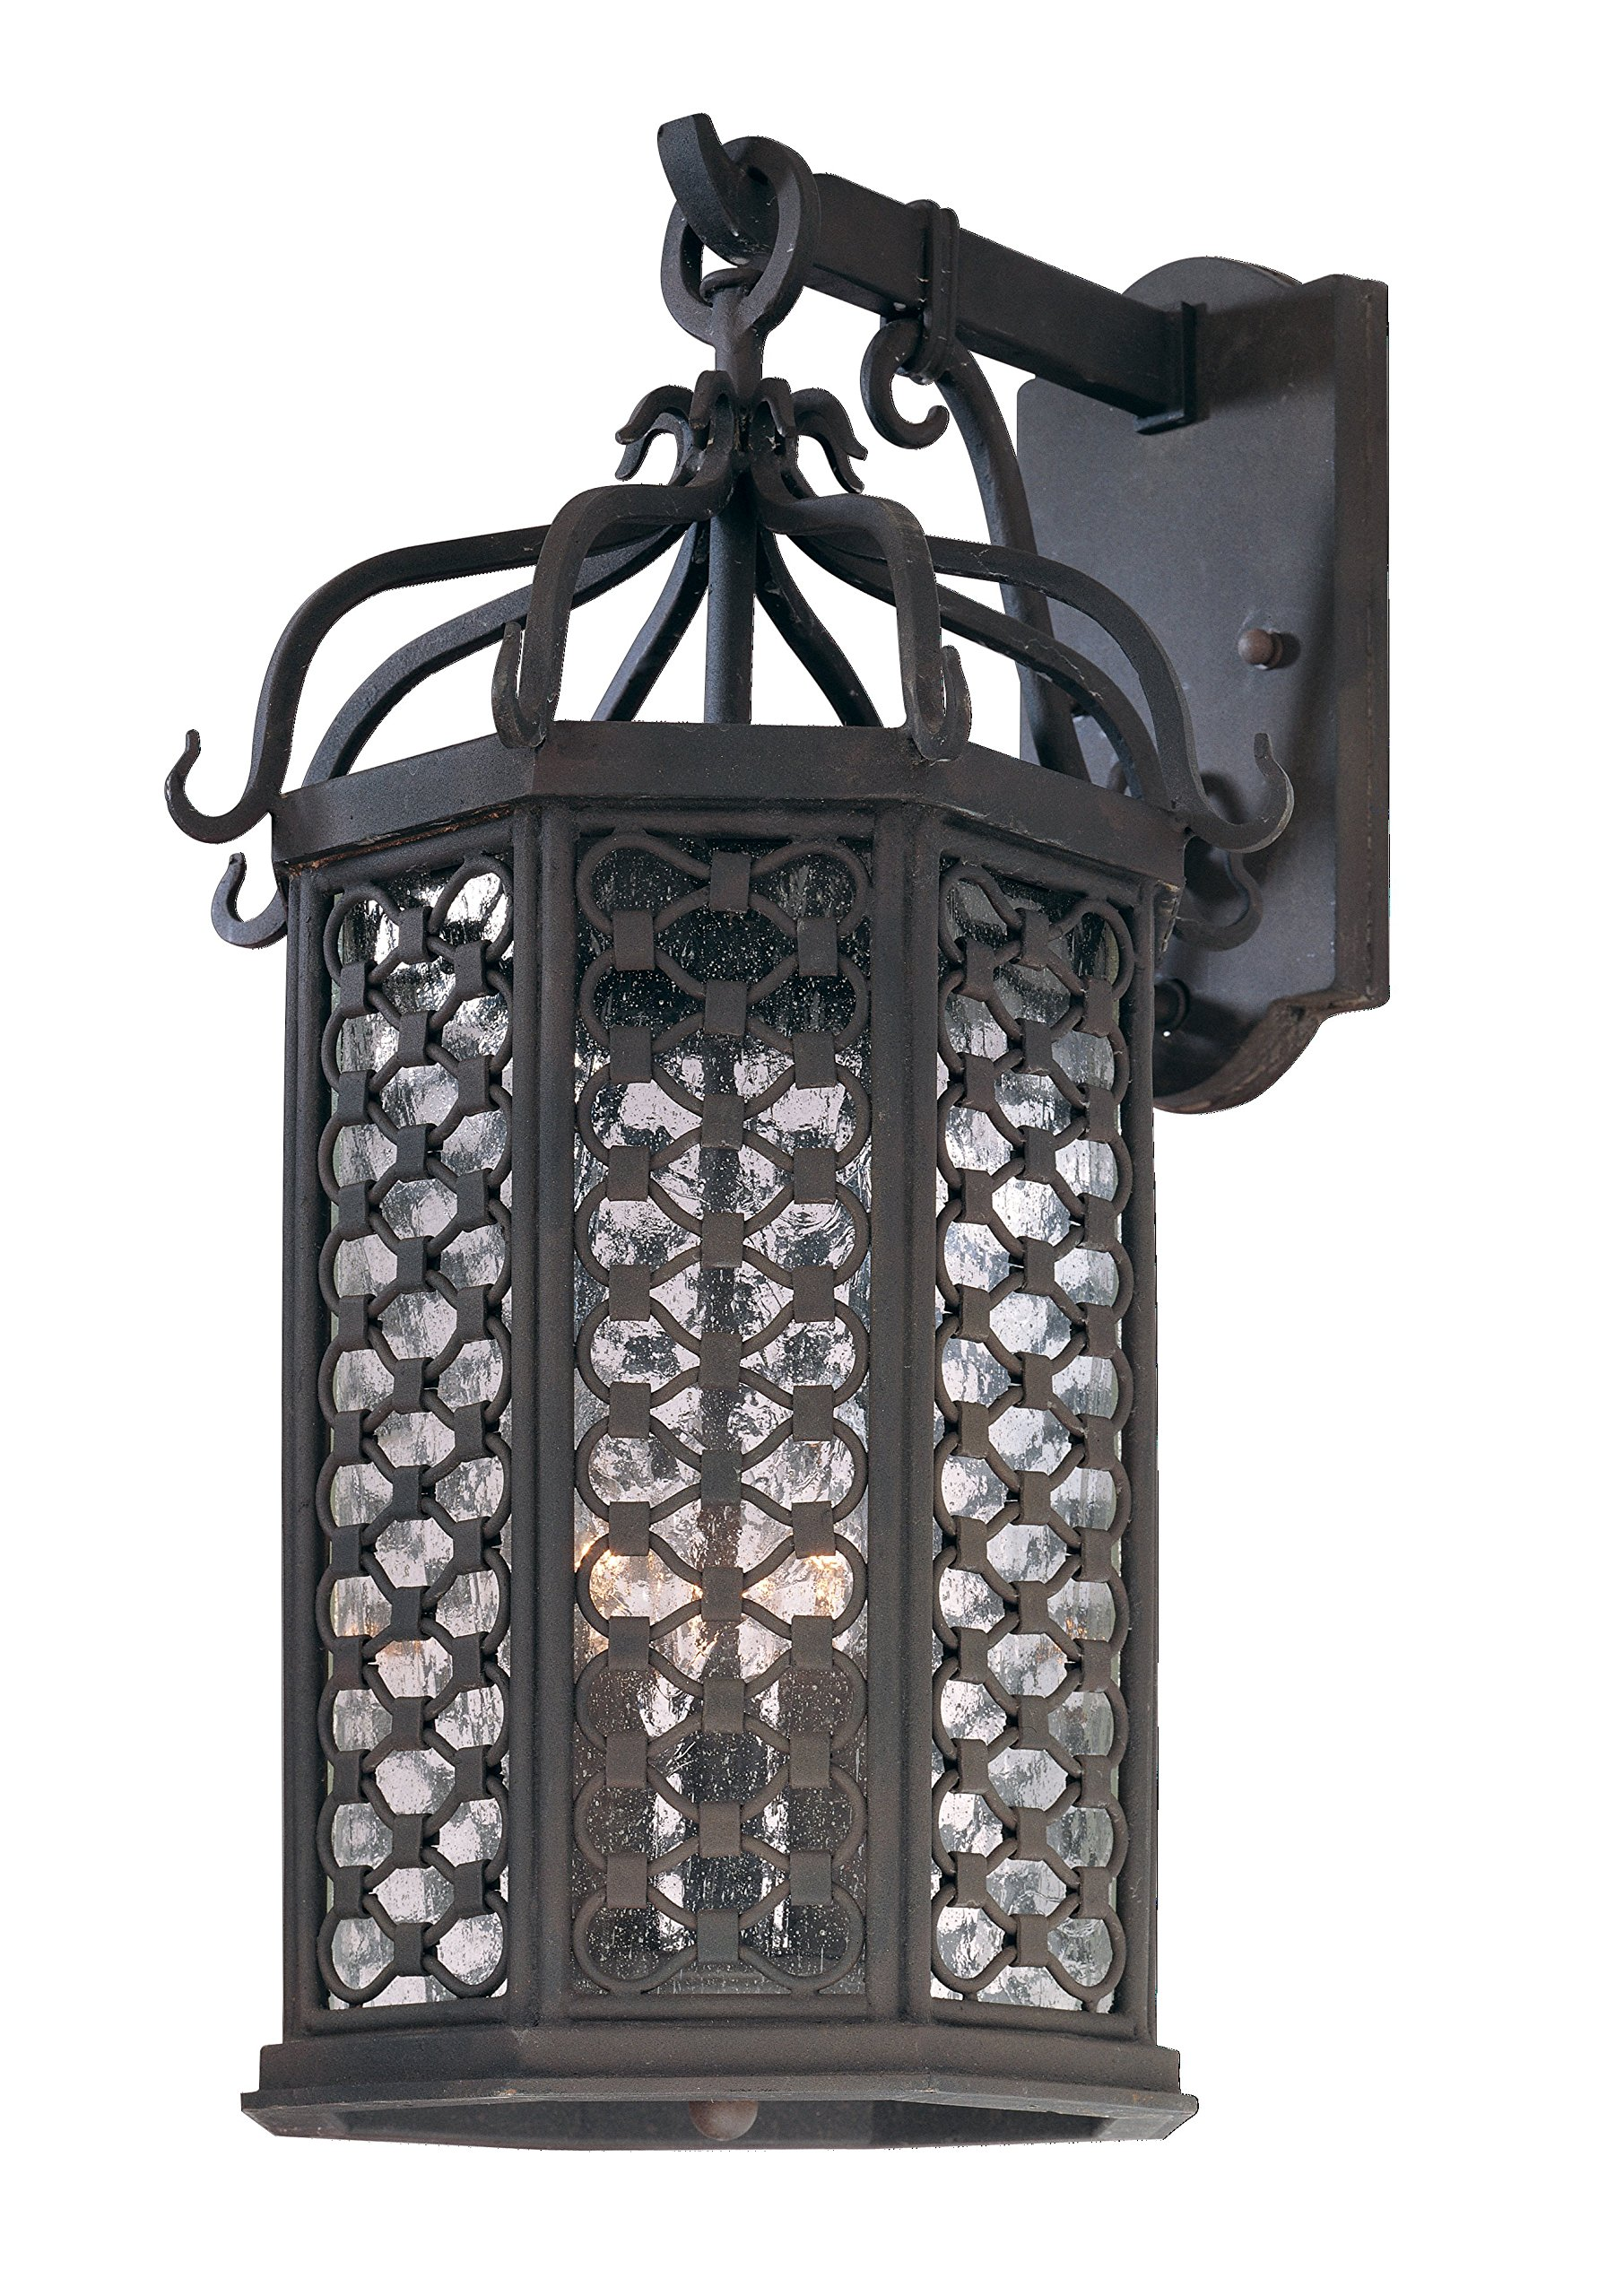 Troy Lighting Los Olivos 20.5''H 3-Light Outdoor Wall Lantern - Old Iron Finish with Clear Seeded Glass